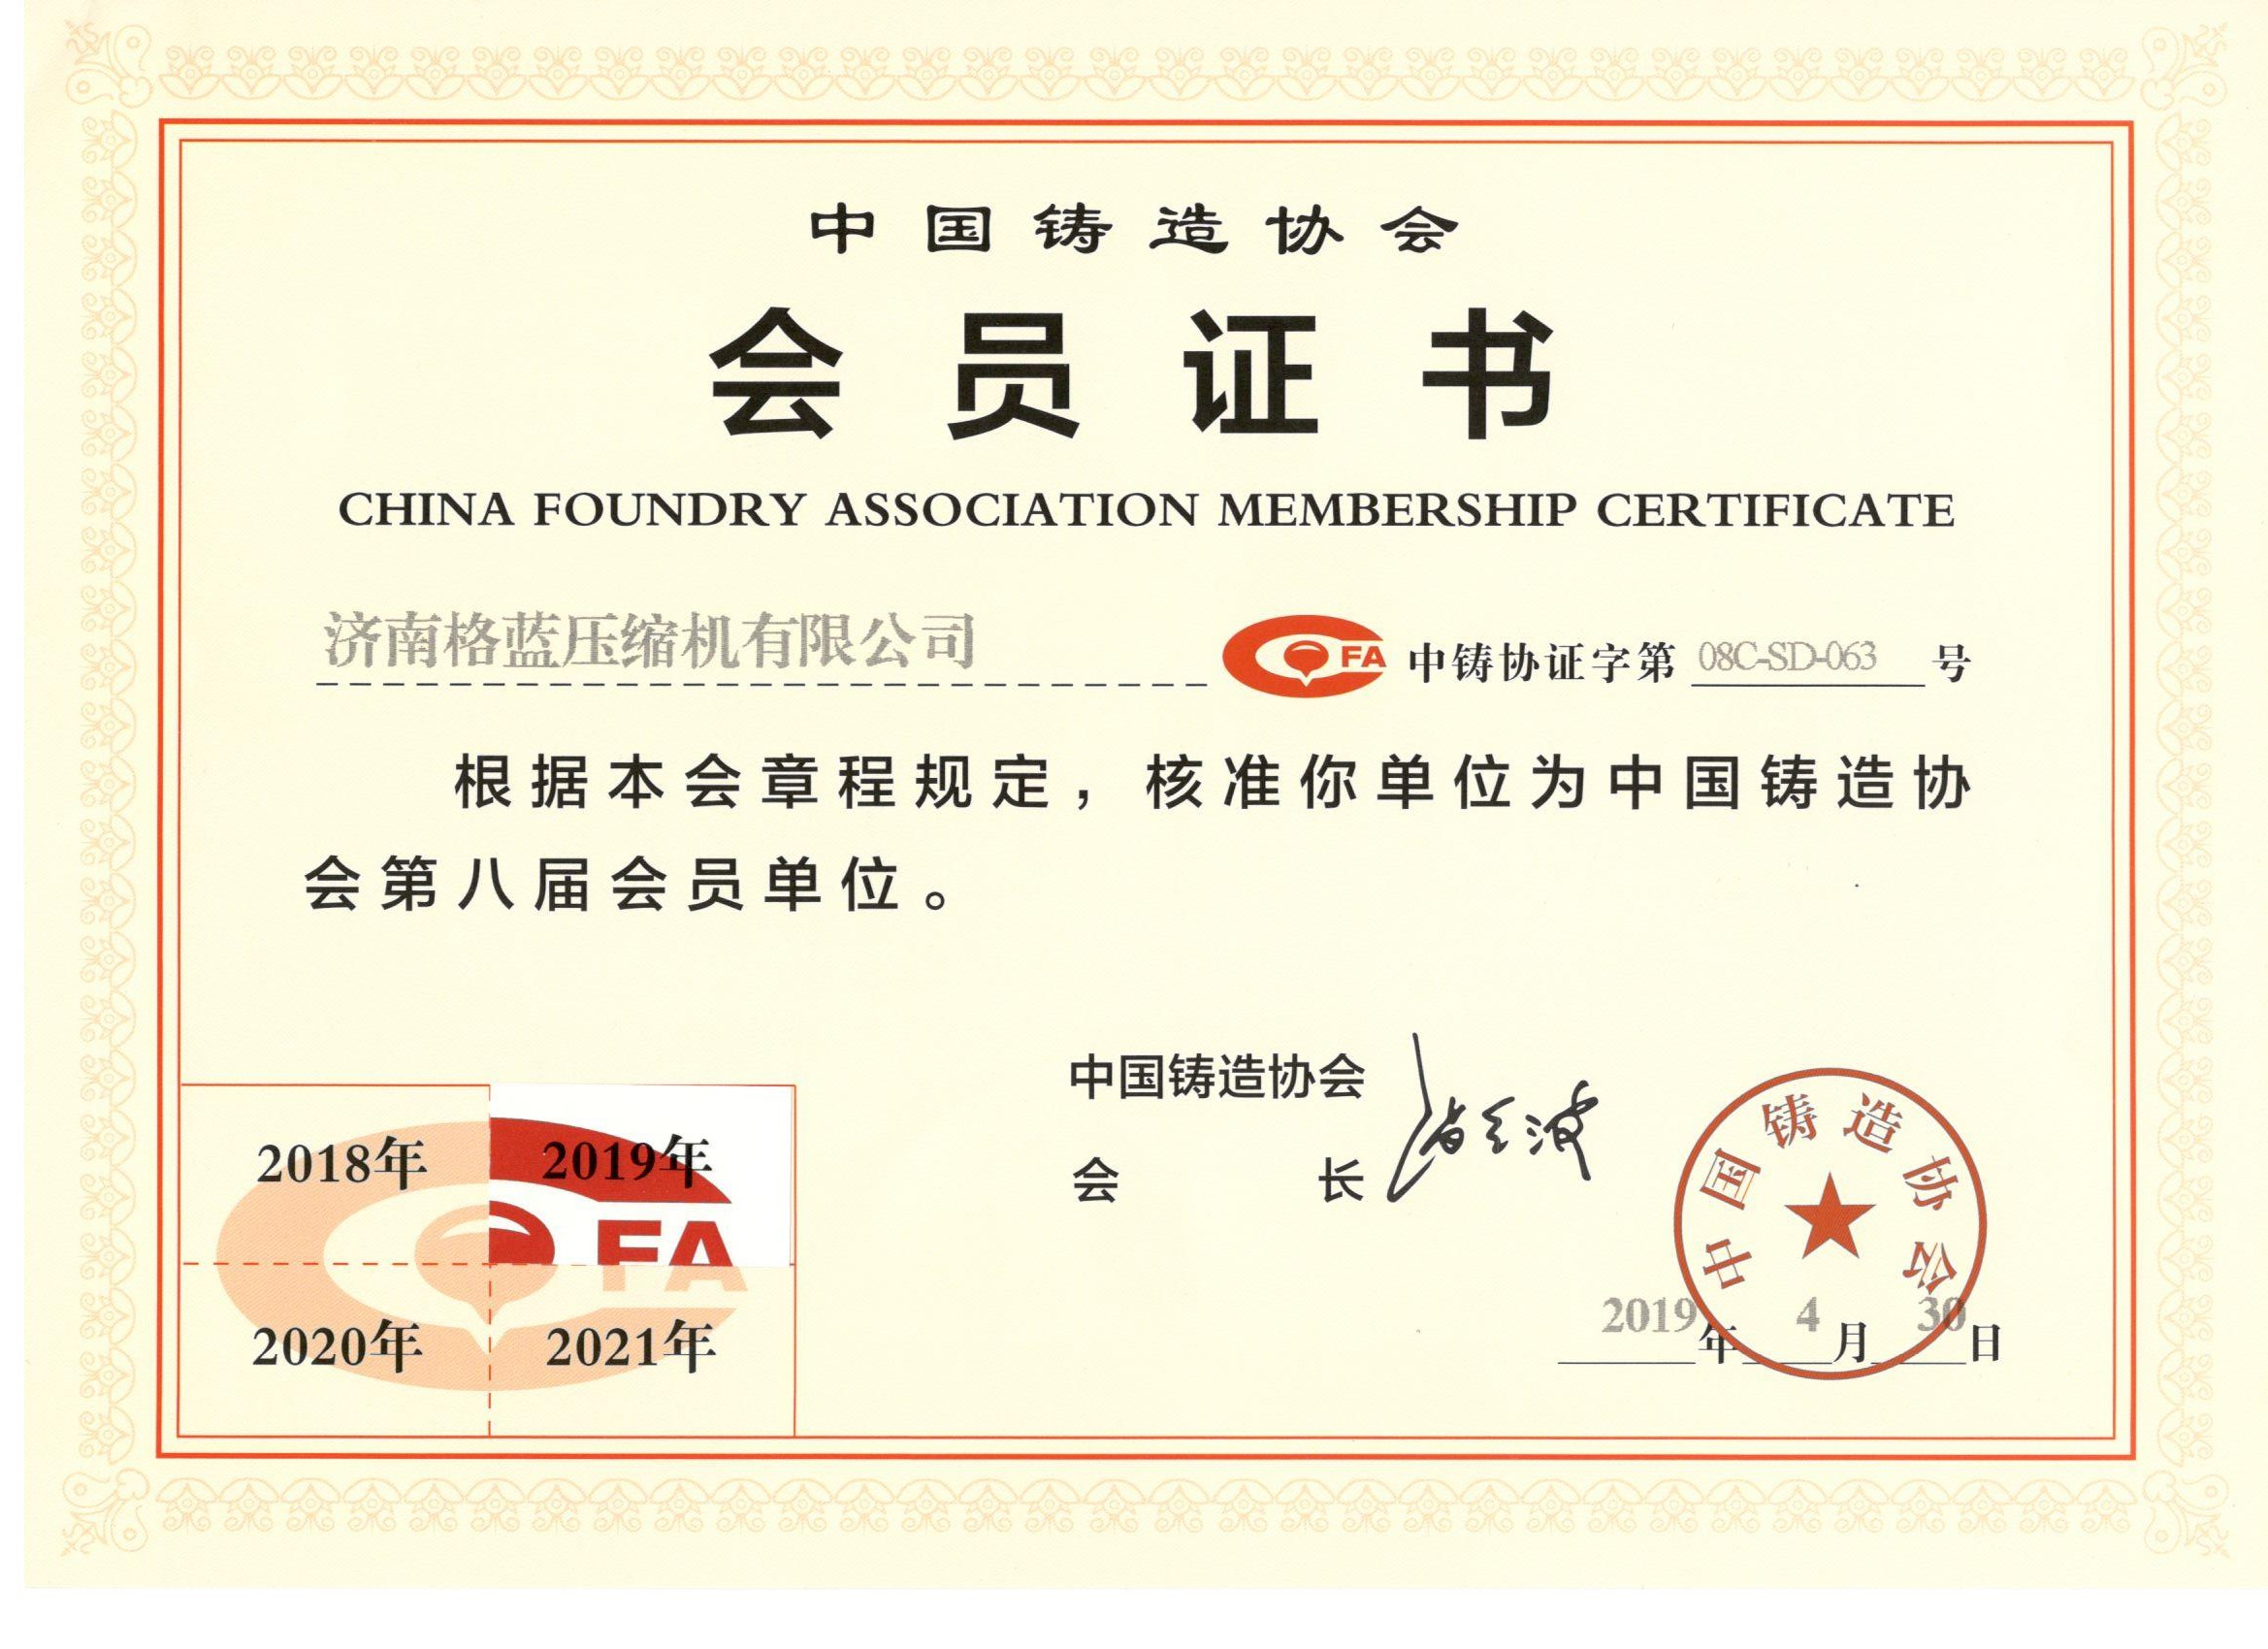 Membership Certificate of China Foun...